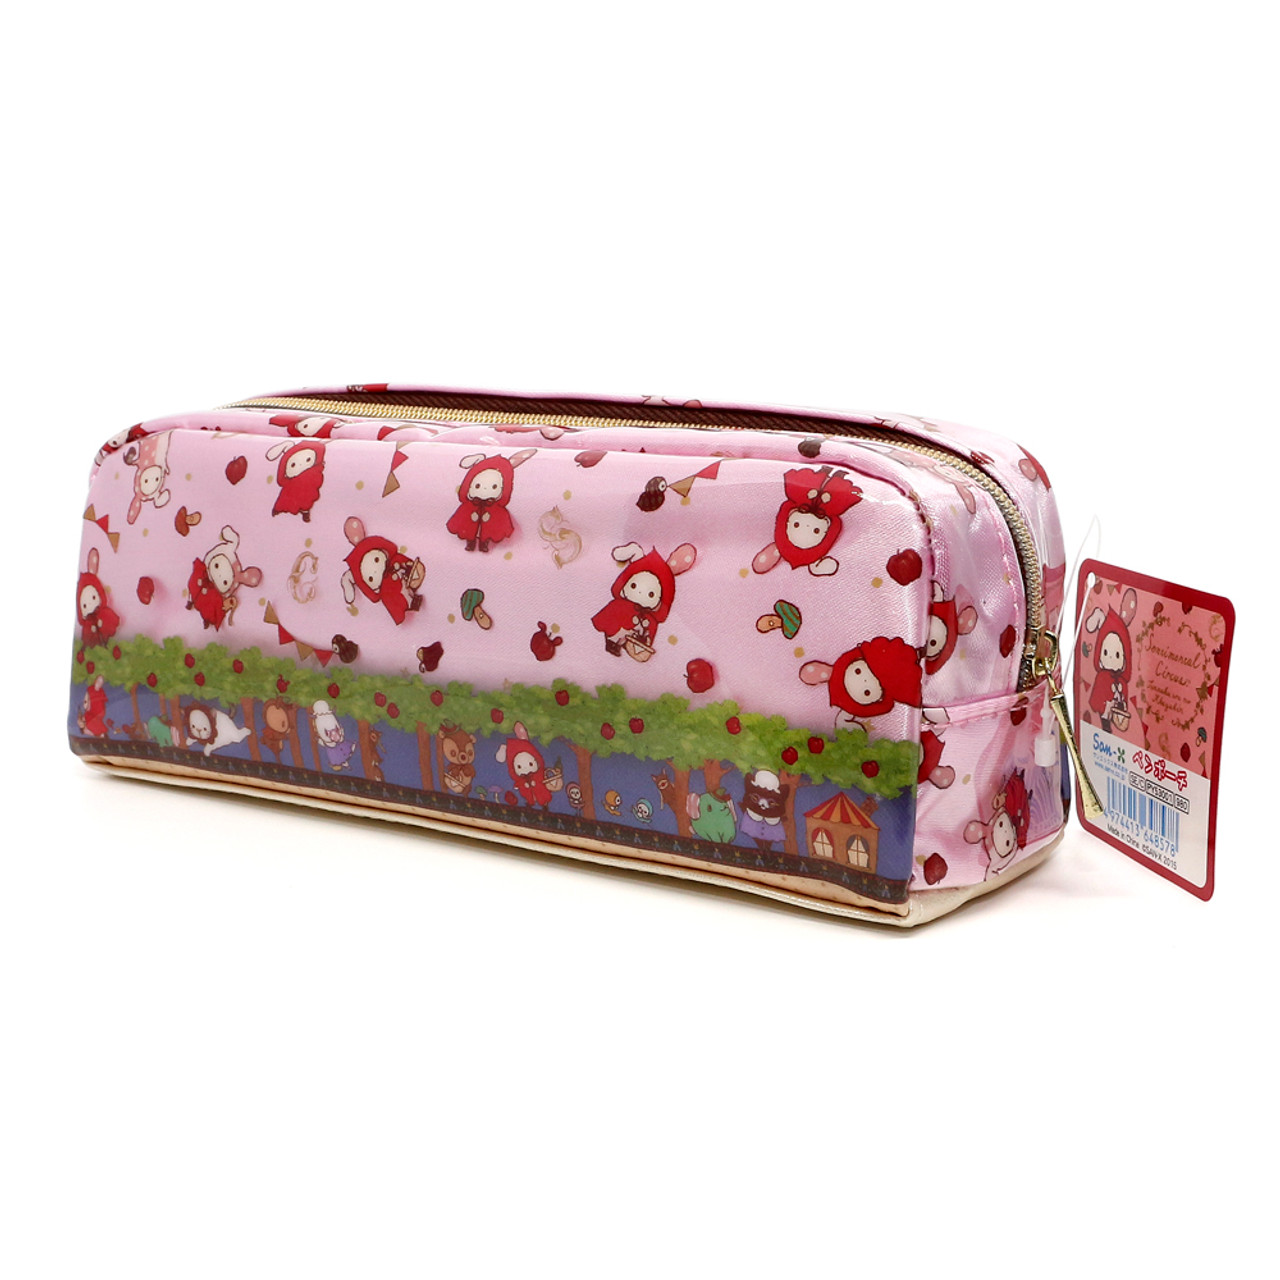 San-x Sentimental Circus Shappo Bunny Little Red Hood In Garden Pencil Case ( Side View )